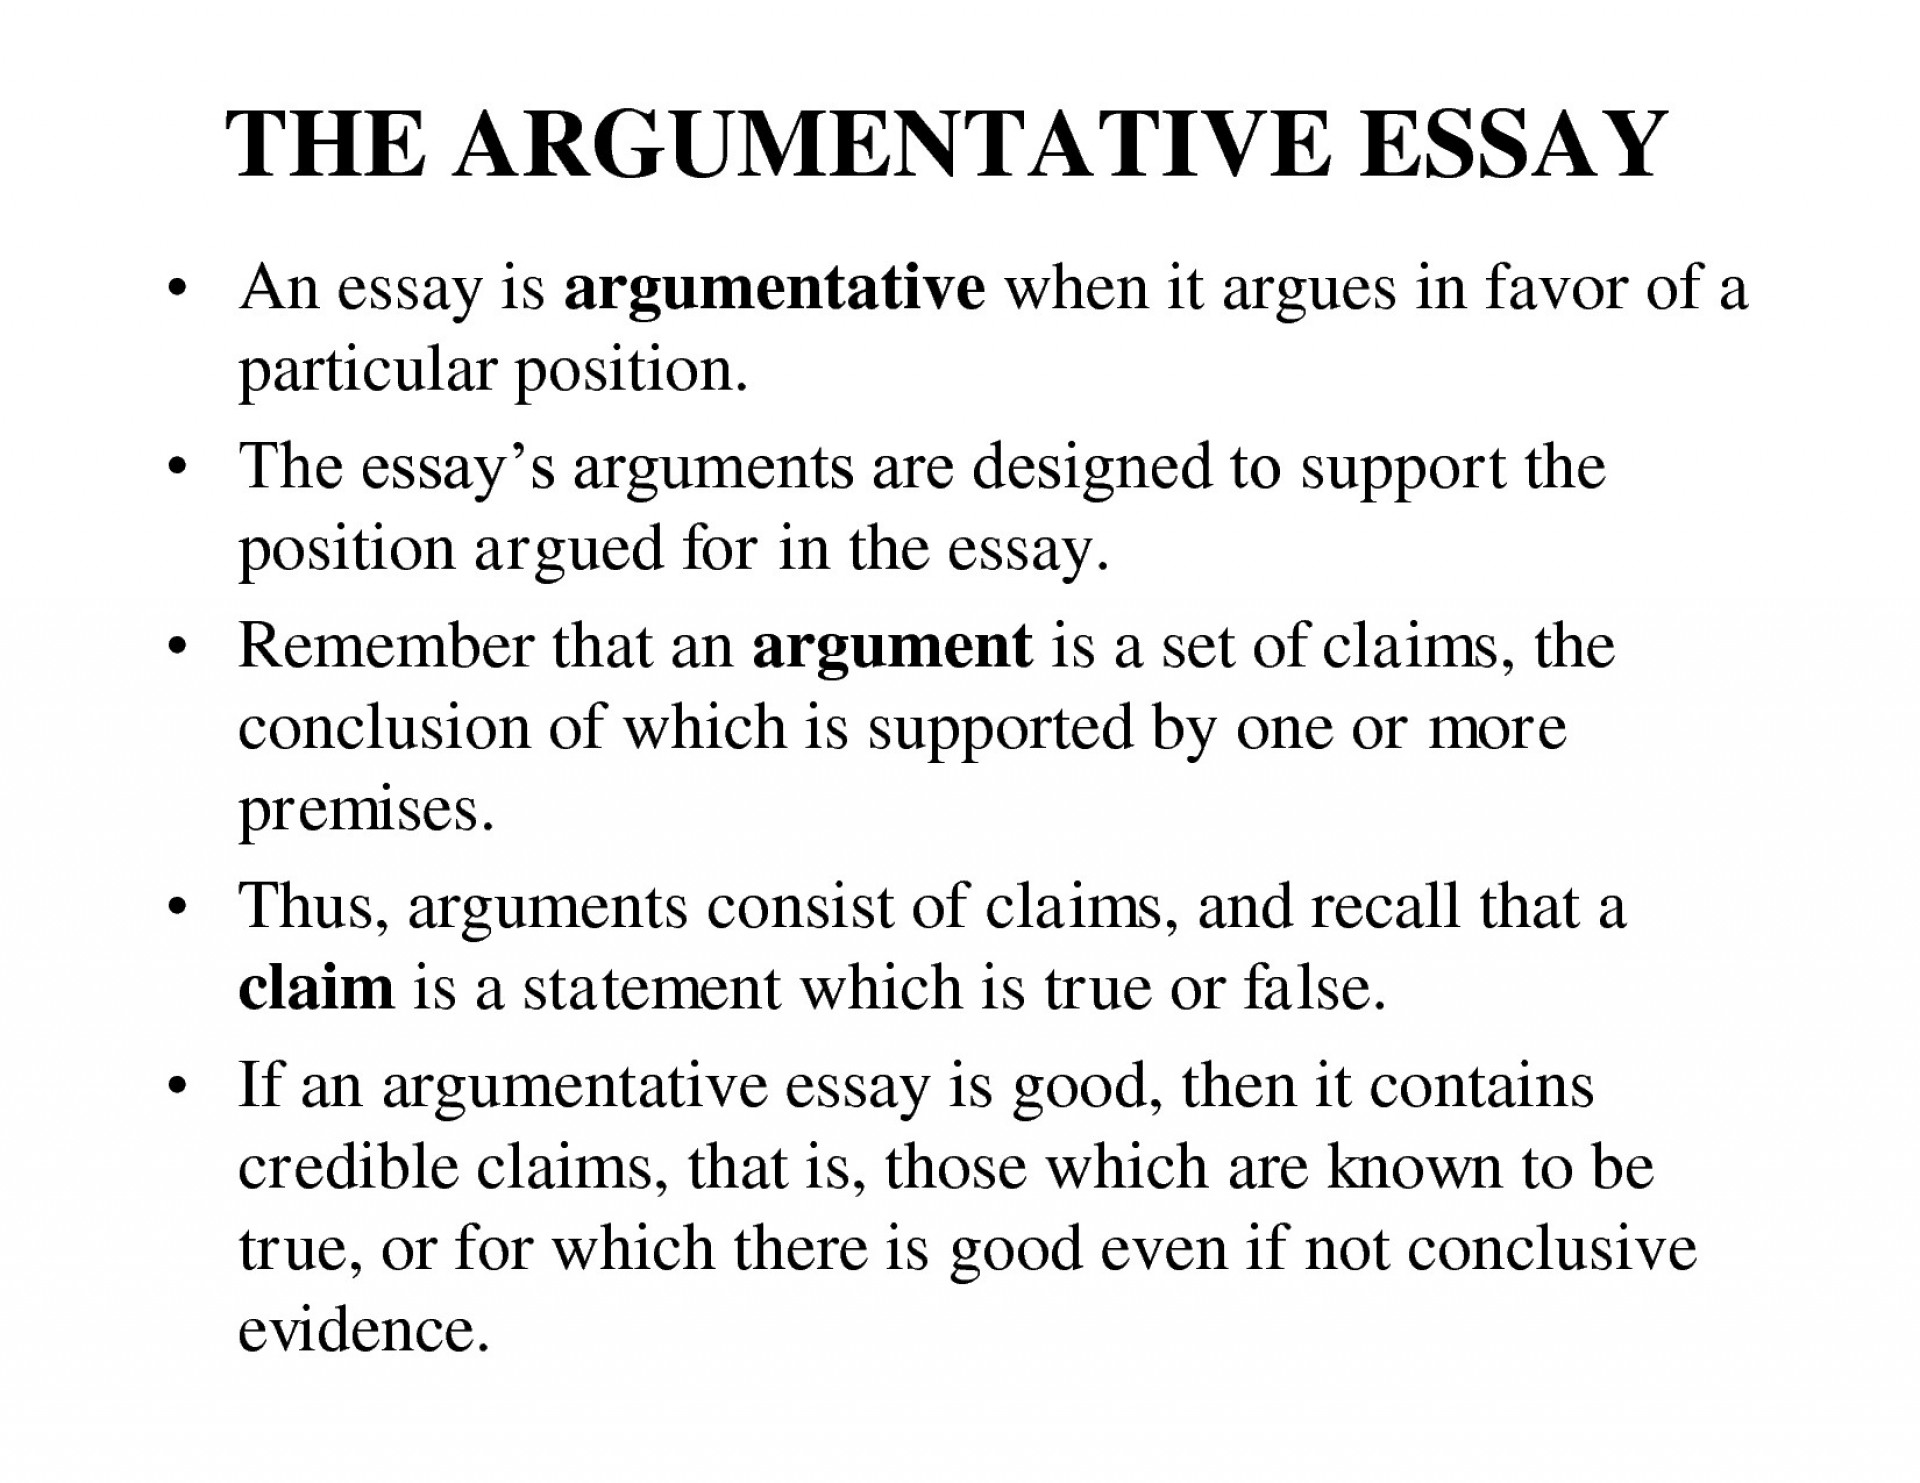 001 How To Write Good Conclusion For An Essay Exampleentative World Of Concluding Paragraph Persuasive Gse Bookbinder Co Rega Examples Impressive A Argumentative Really Opinion 1920